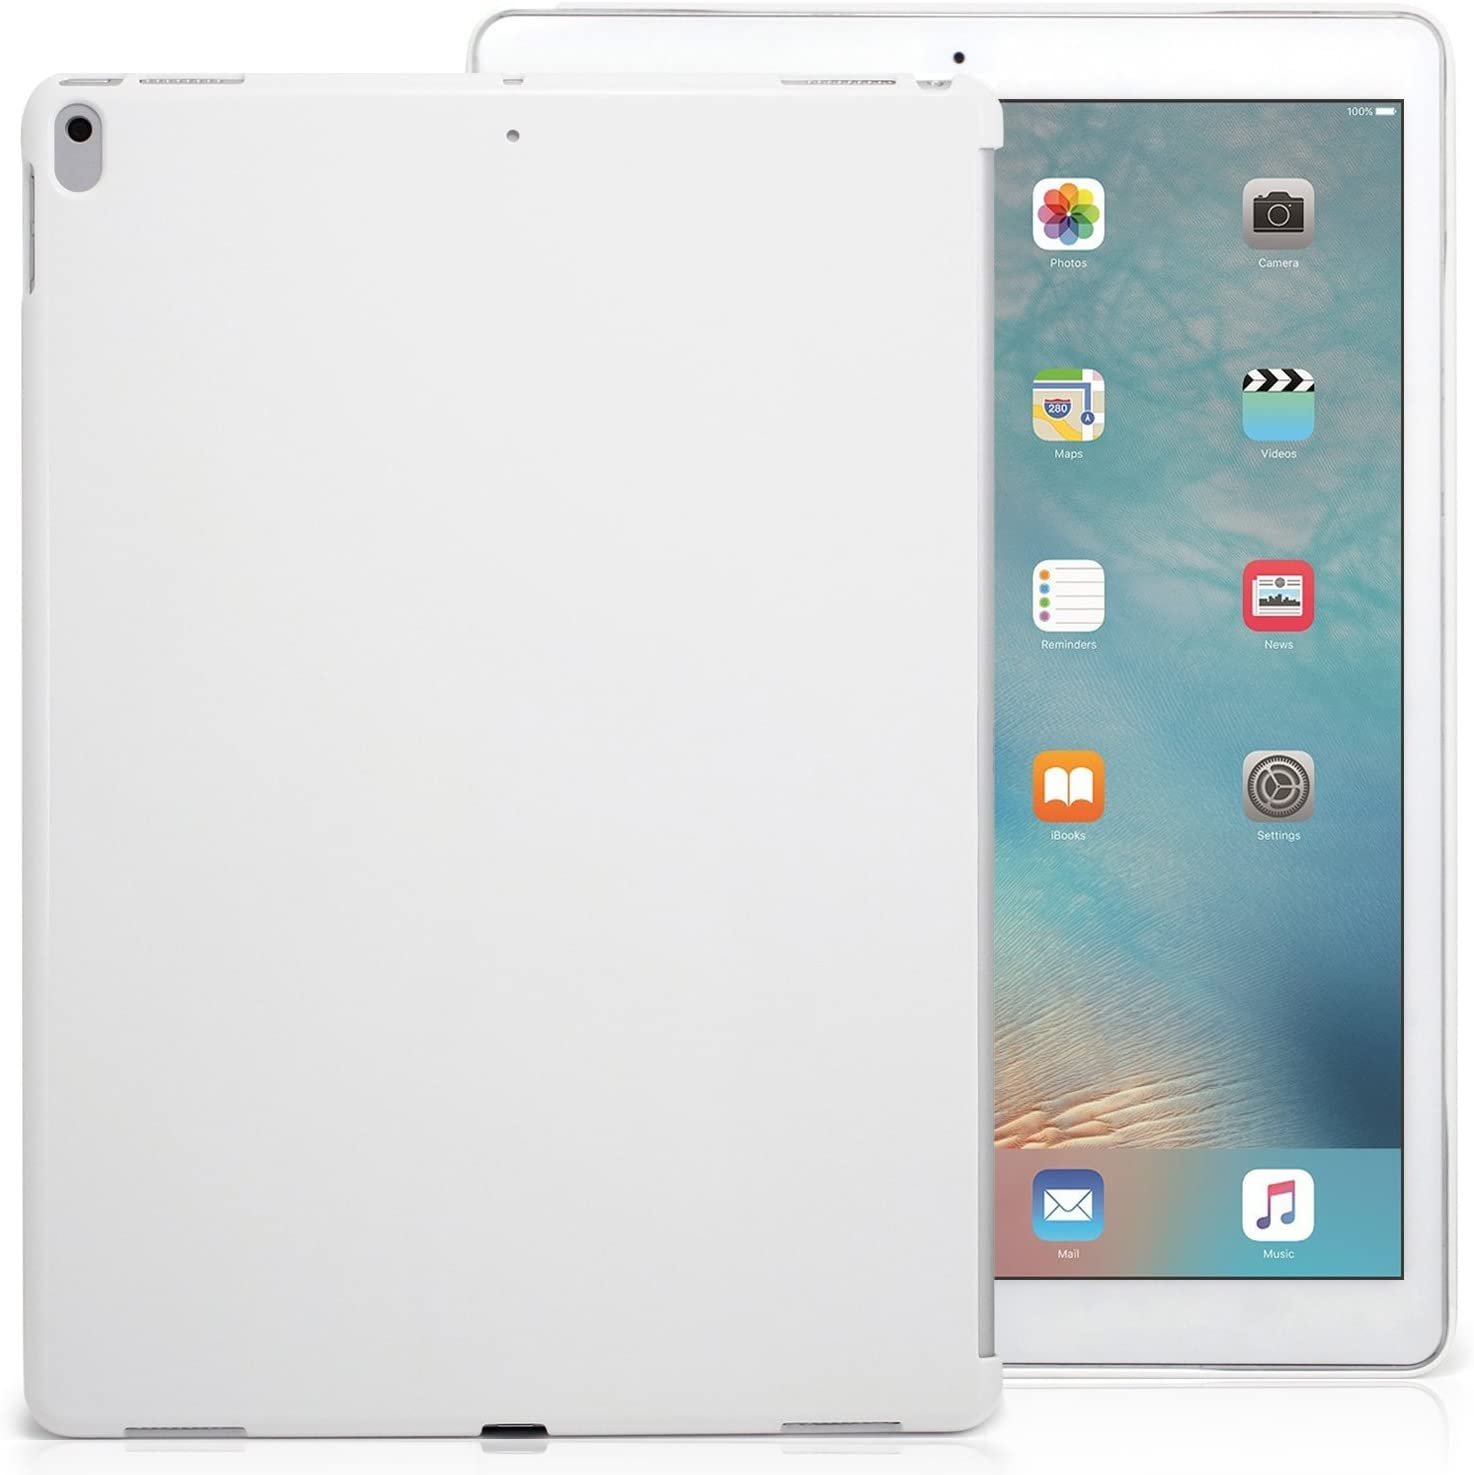 KHOMO - iPad Pro 12.9 Inch White Color Case - 2017 Version - Companion Cover - Perfect Match for Apple Smart Keyboard and Cover.